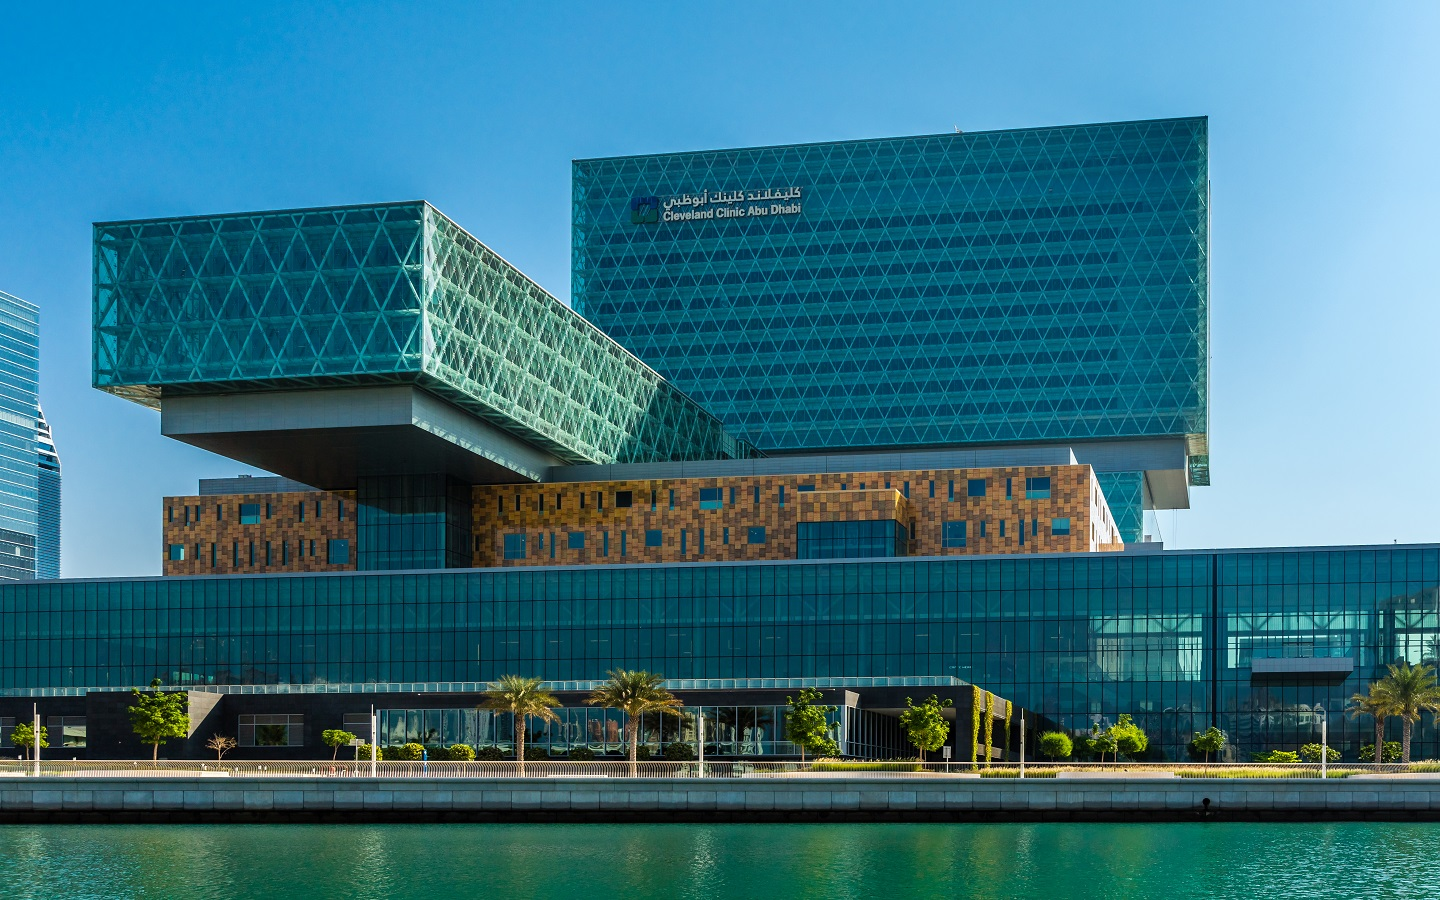 Outside view of Cleveland Clinic Abu Dhabi